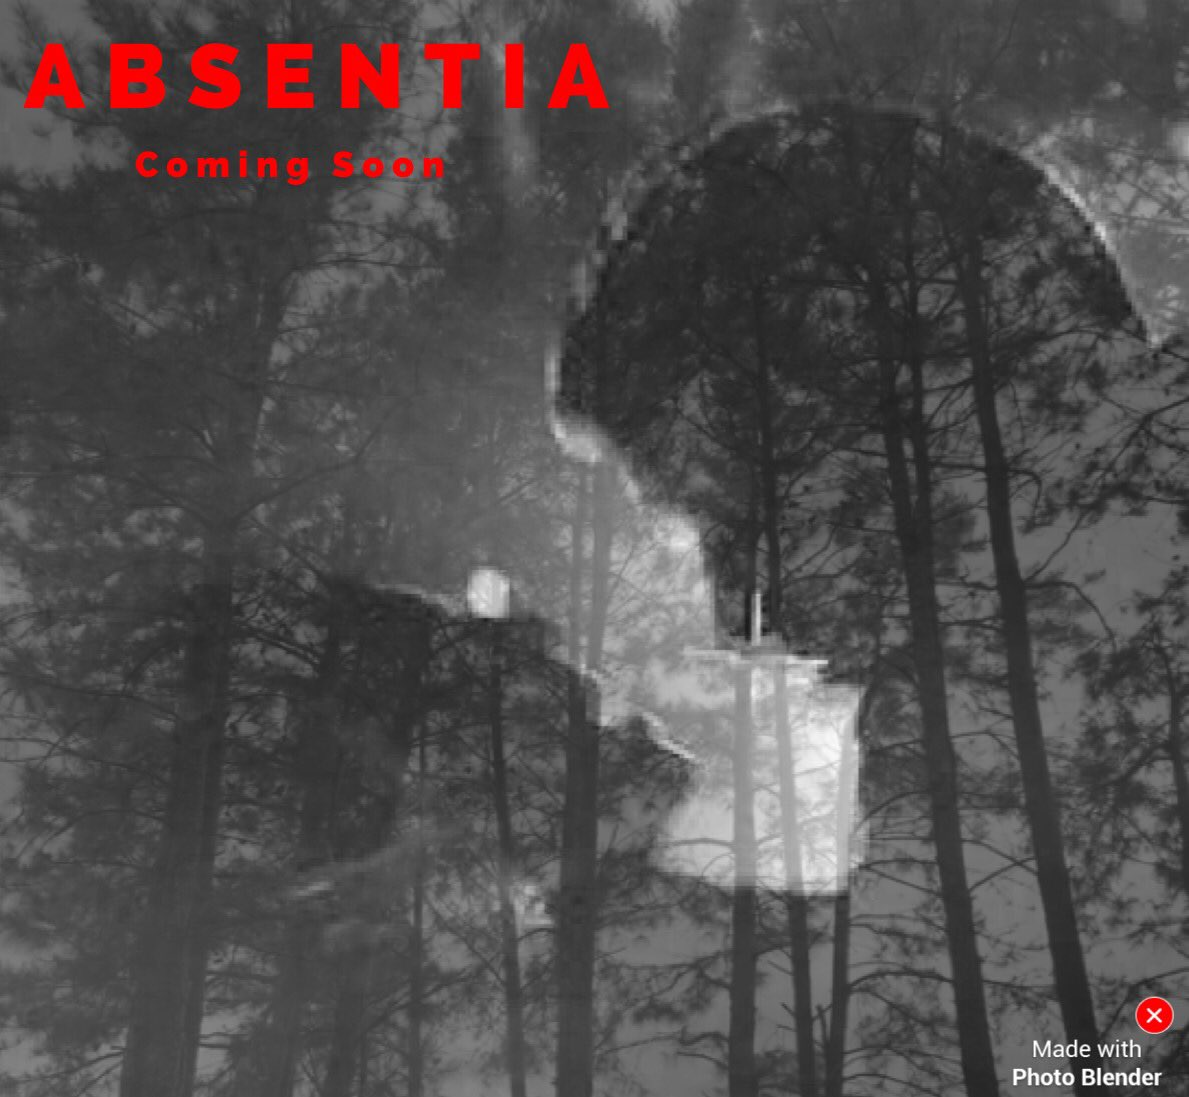 @AbsentiaSeries My 1st fanart! Took me awhile 2 talk myself into sharing.A pic from my backyard blended with an #Absentia pic #StillLearning<br>http://pic.twitter.com/wqCyeoYB5R